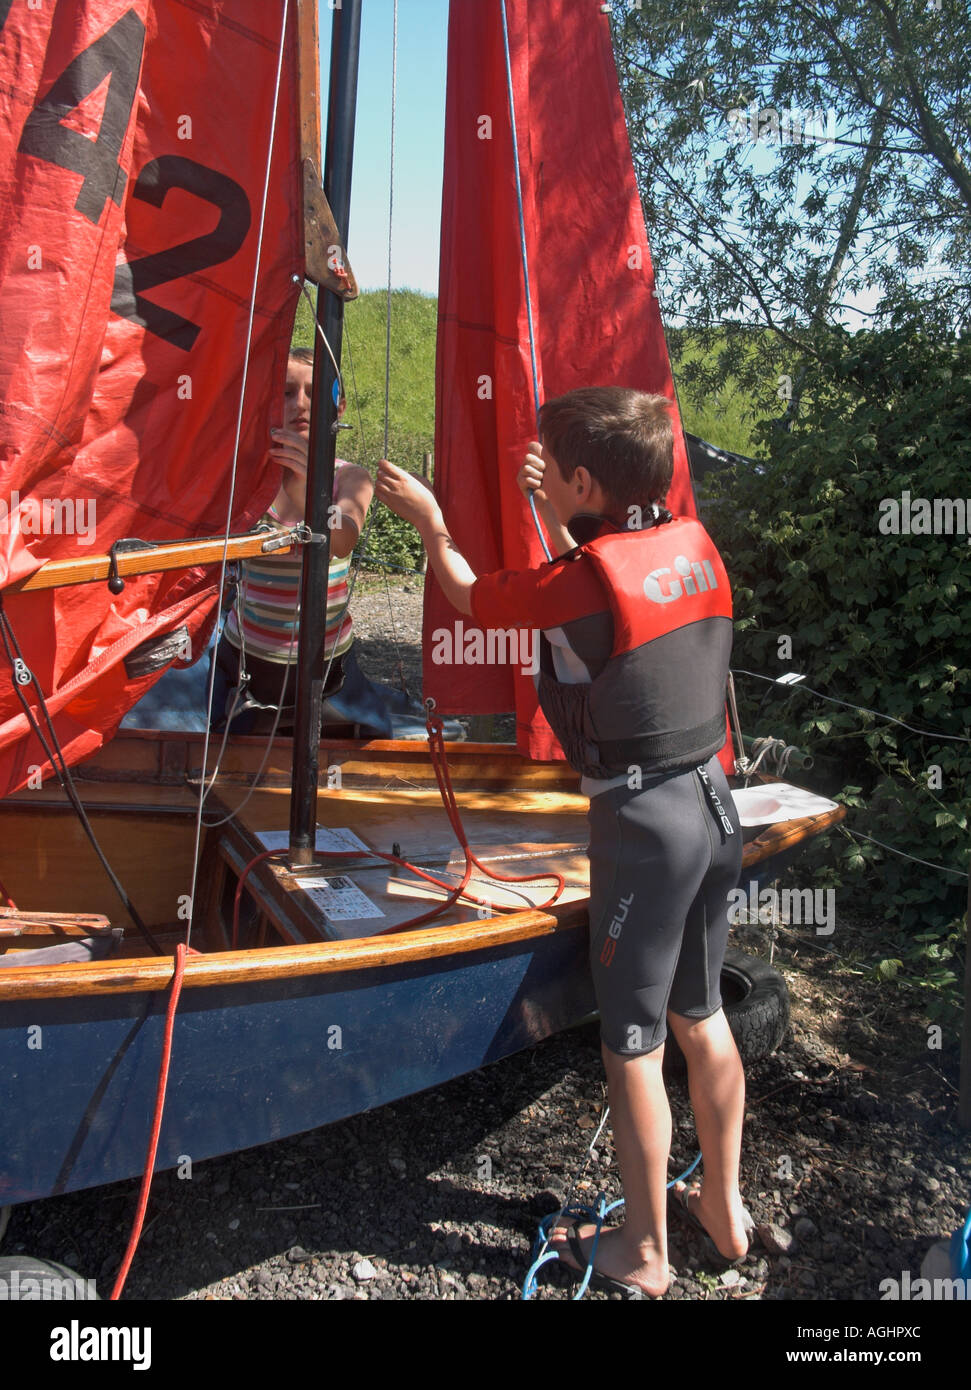 hight resolution of children rigging the sails and mast on a mirror class sailing dinghy stock image